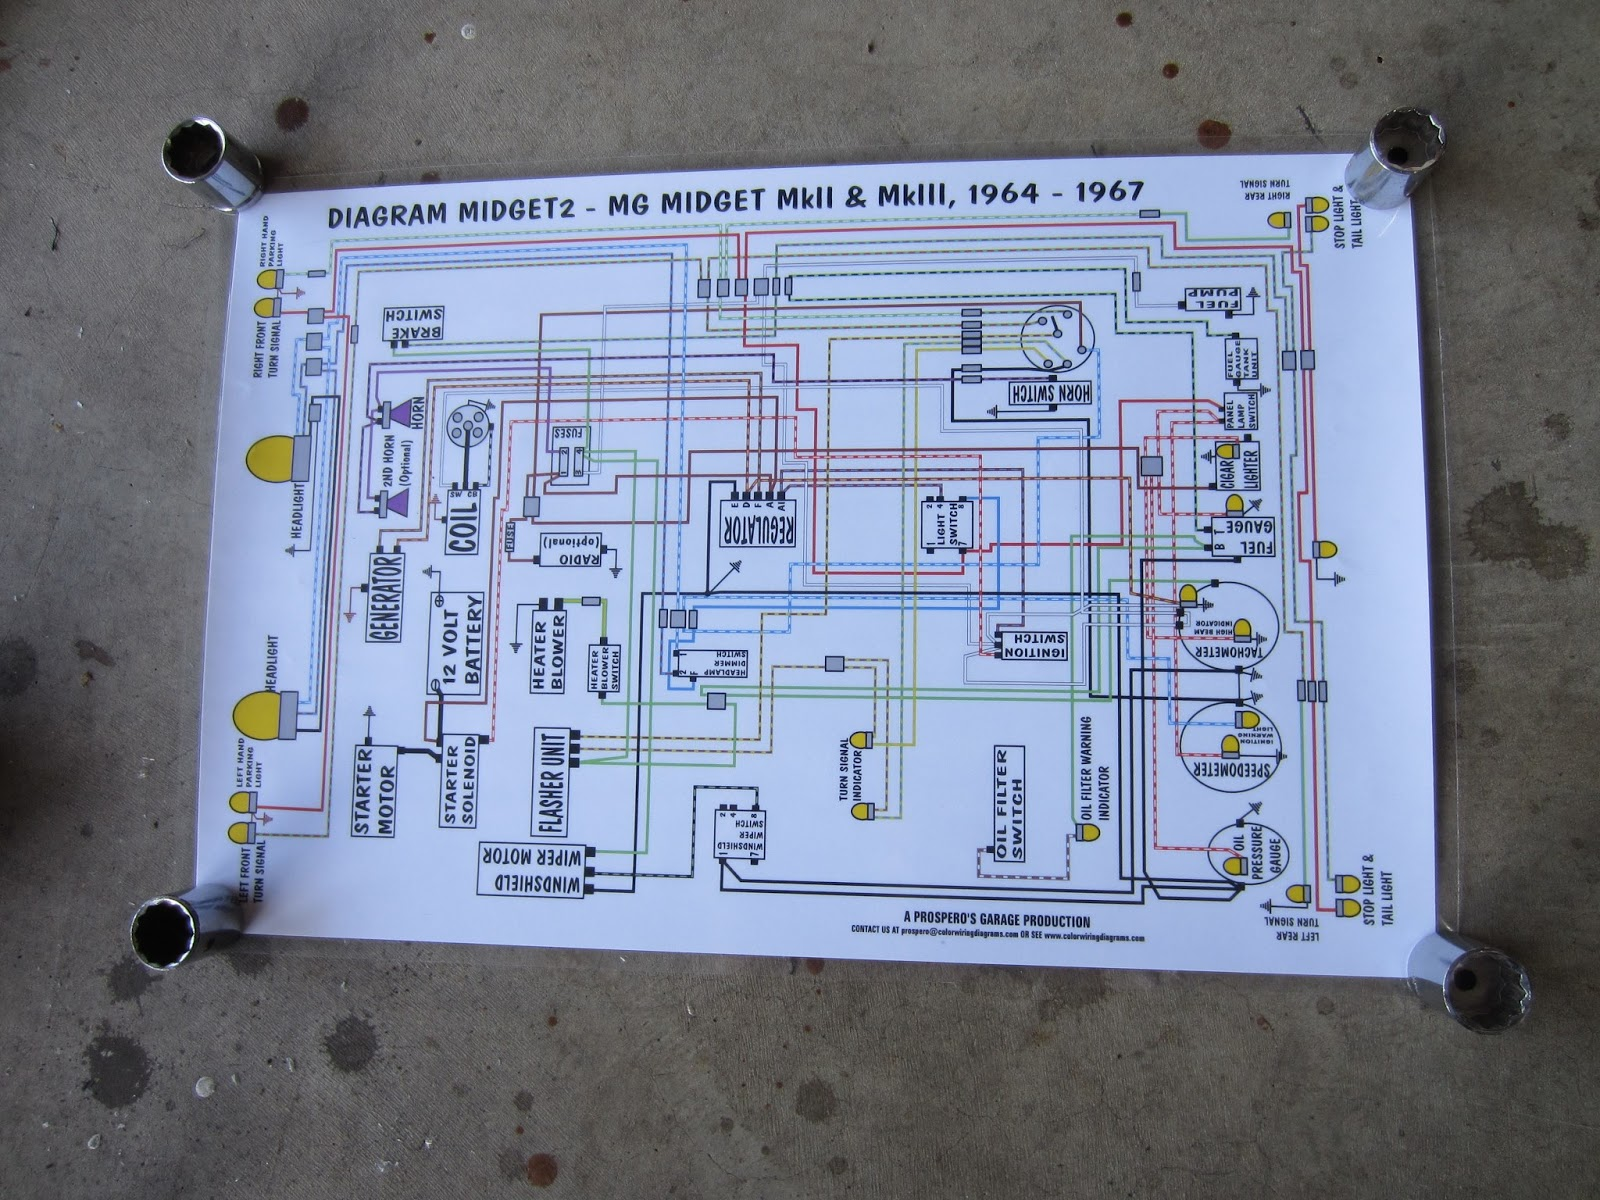 hight resolution of 1976 mg midget wiring diagram wiring diagram technic1976 mg midget wiring diagram wiring library1976 mg midget